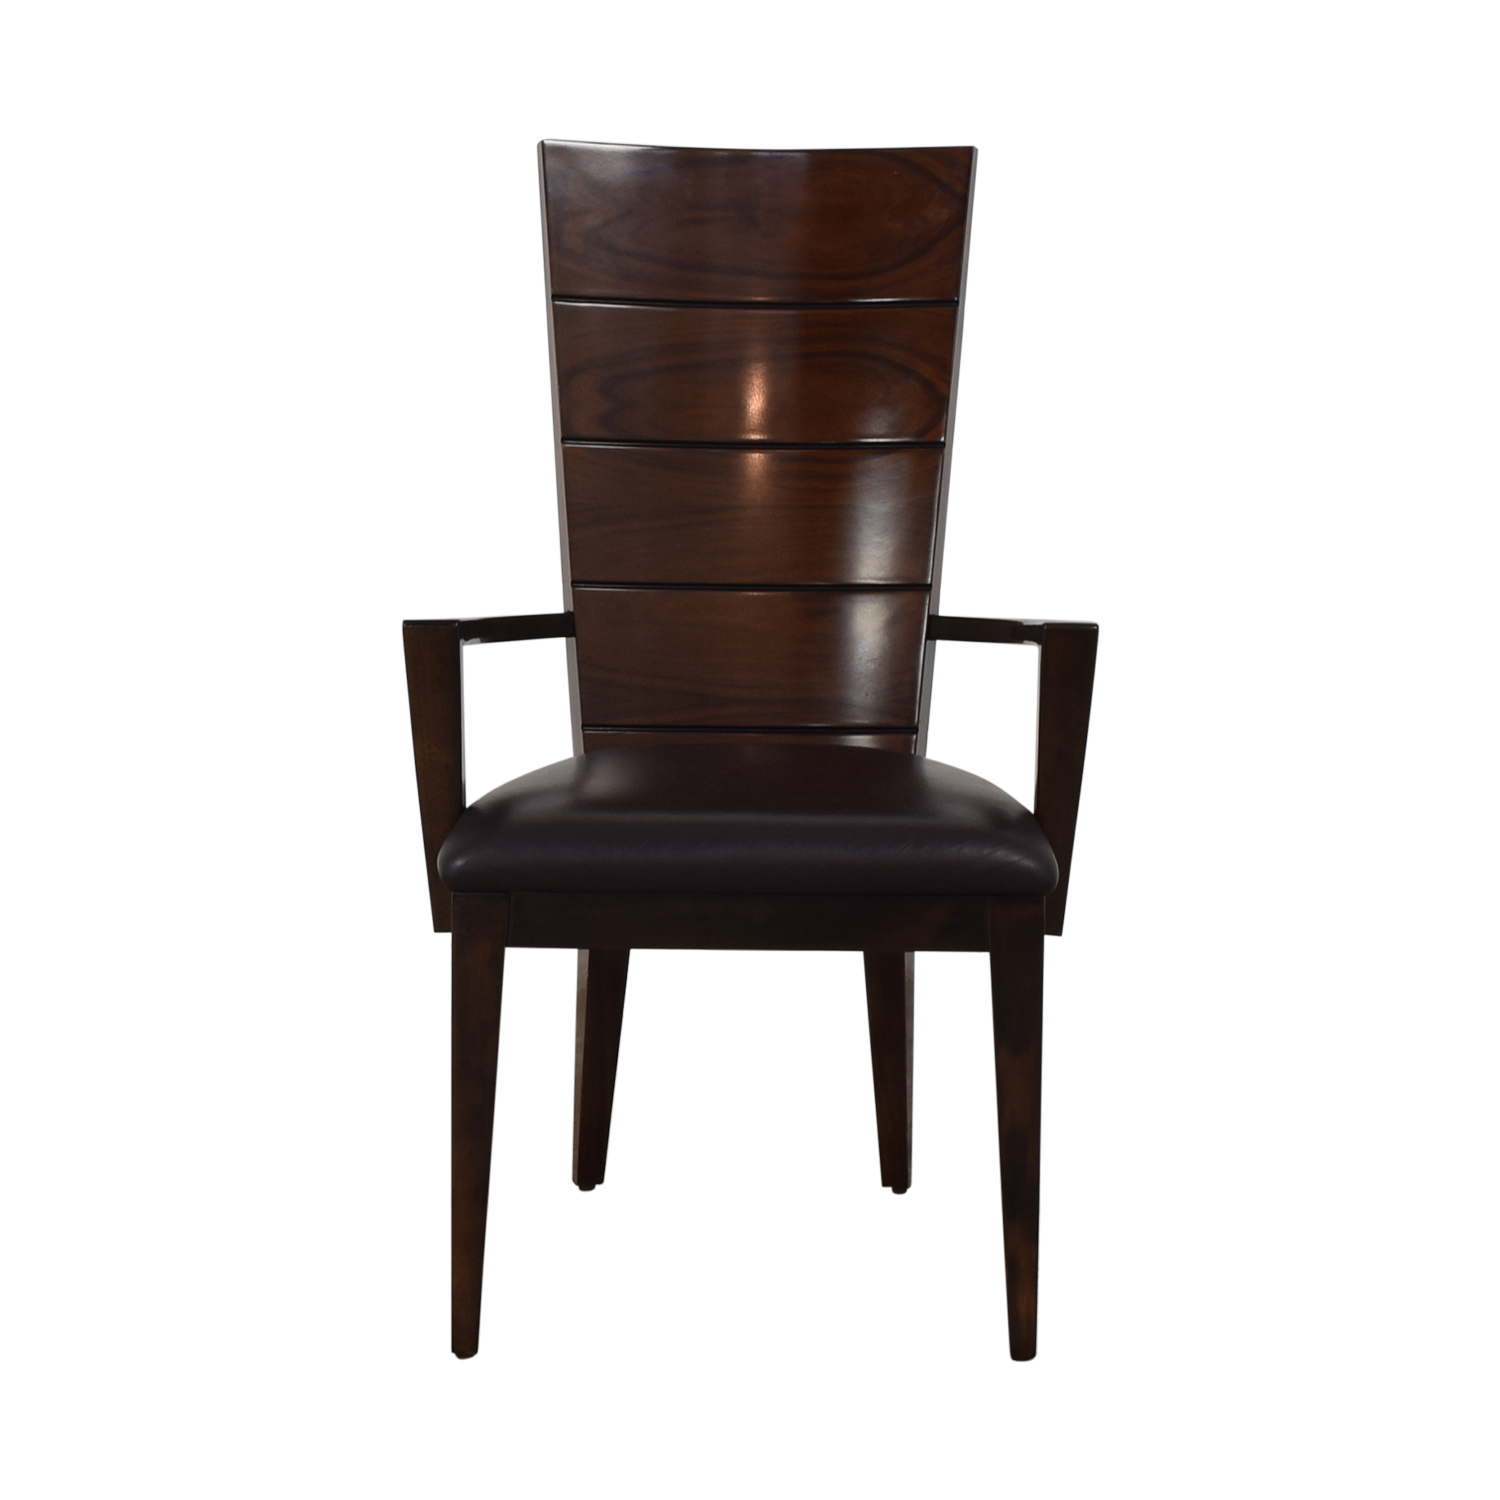 shop Elio High Gloss Wood and Leather Chair Elio Chairs